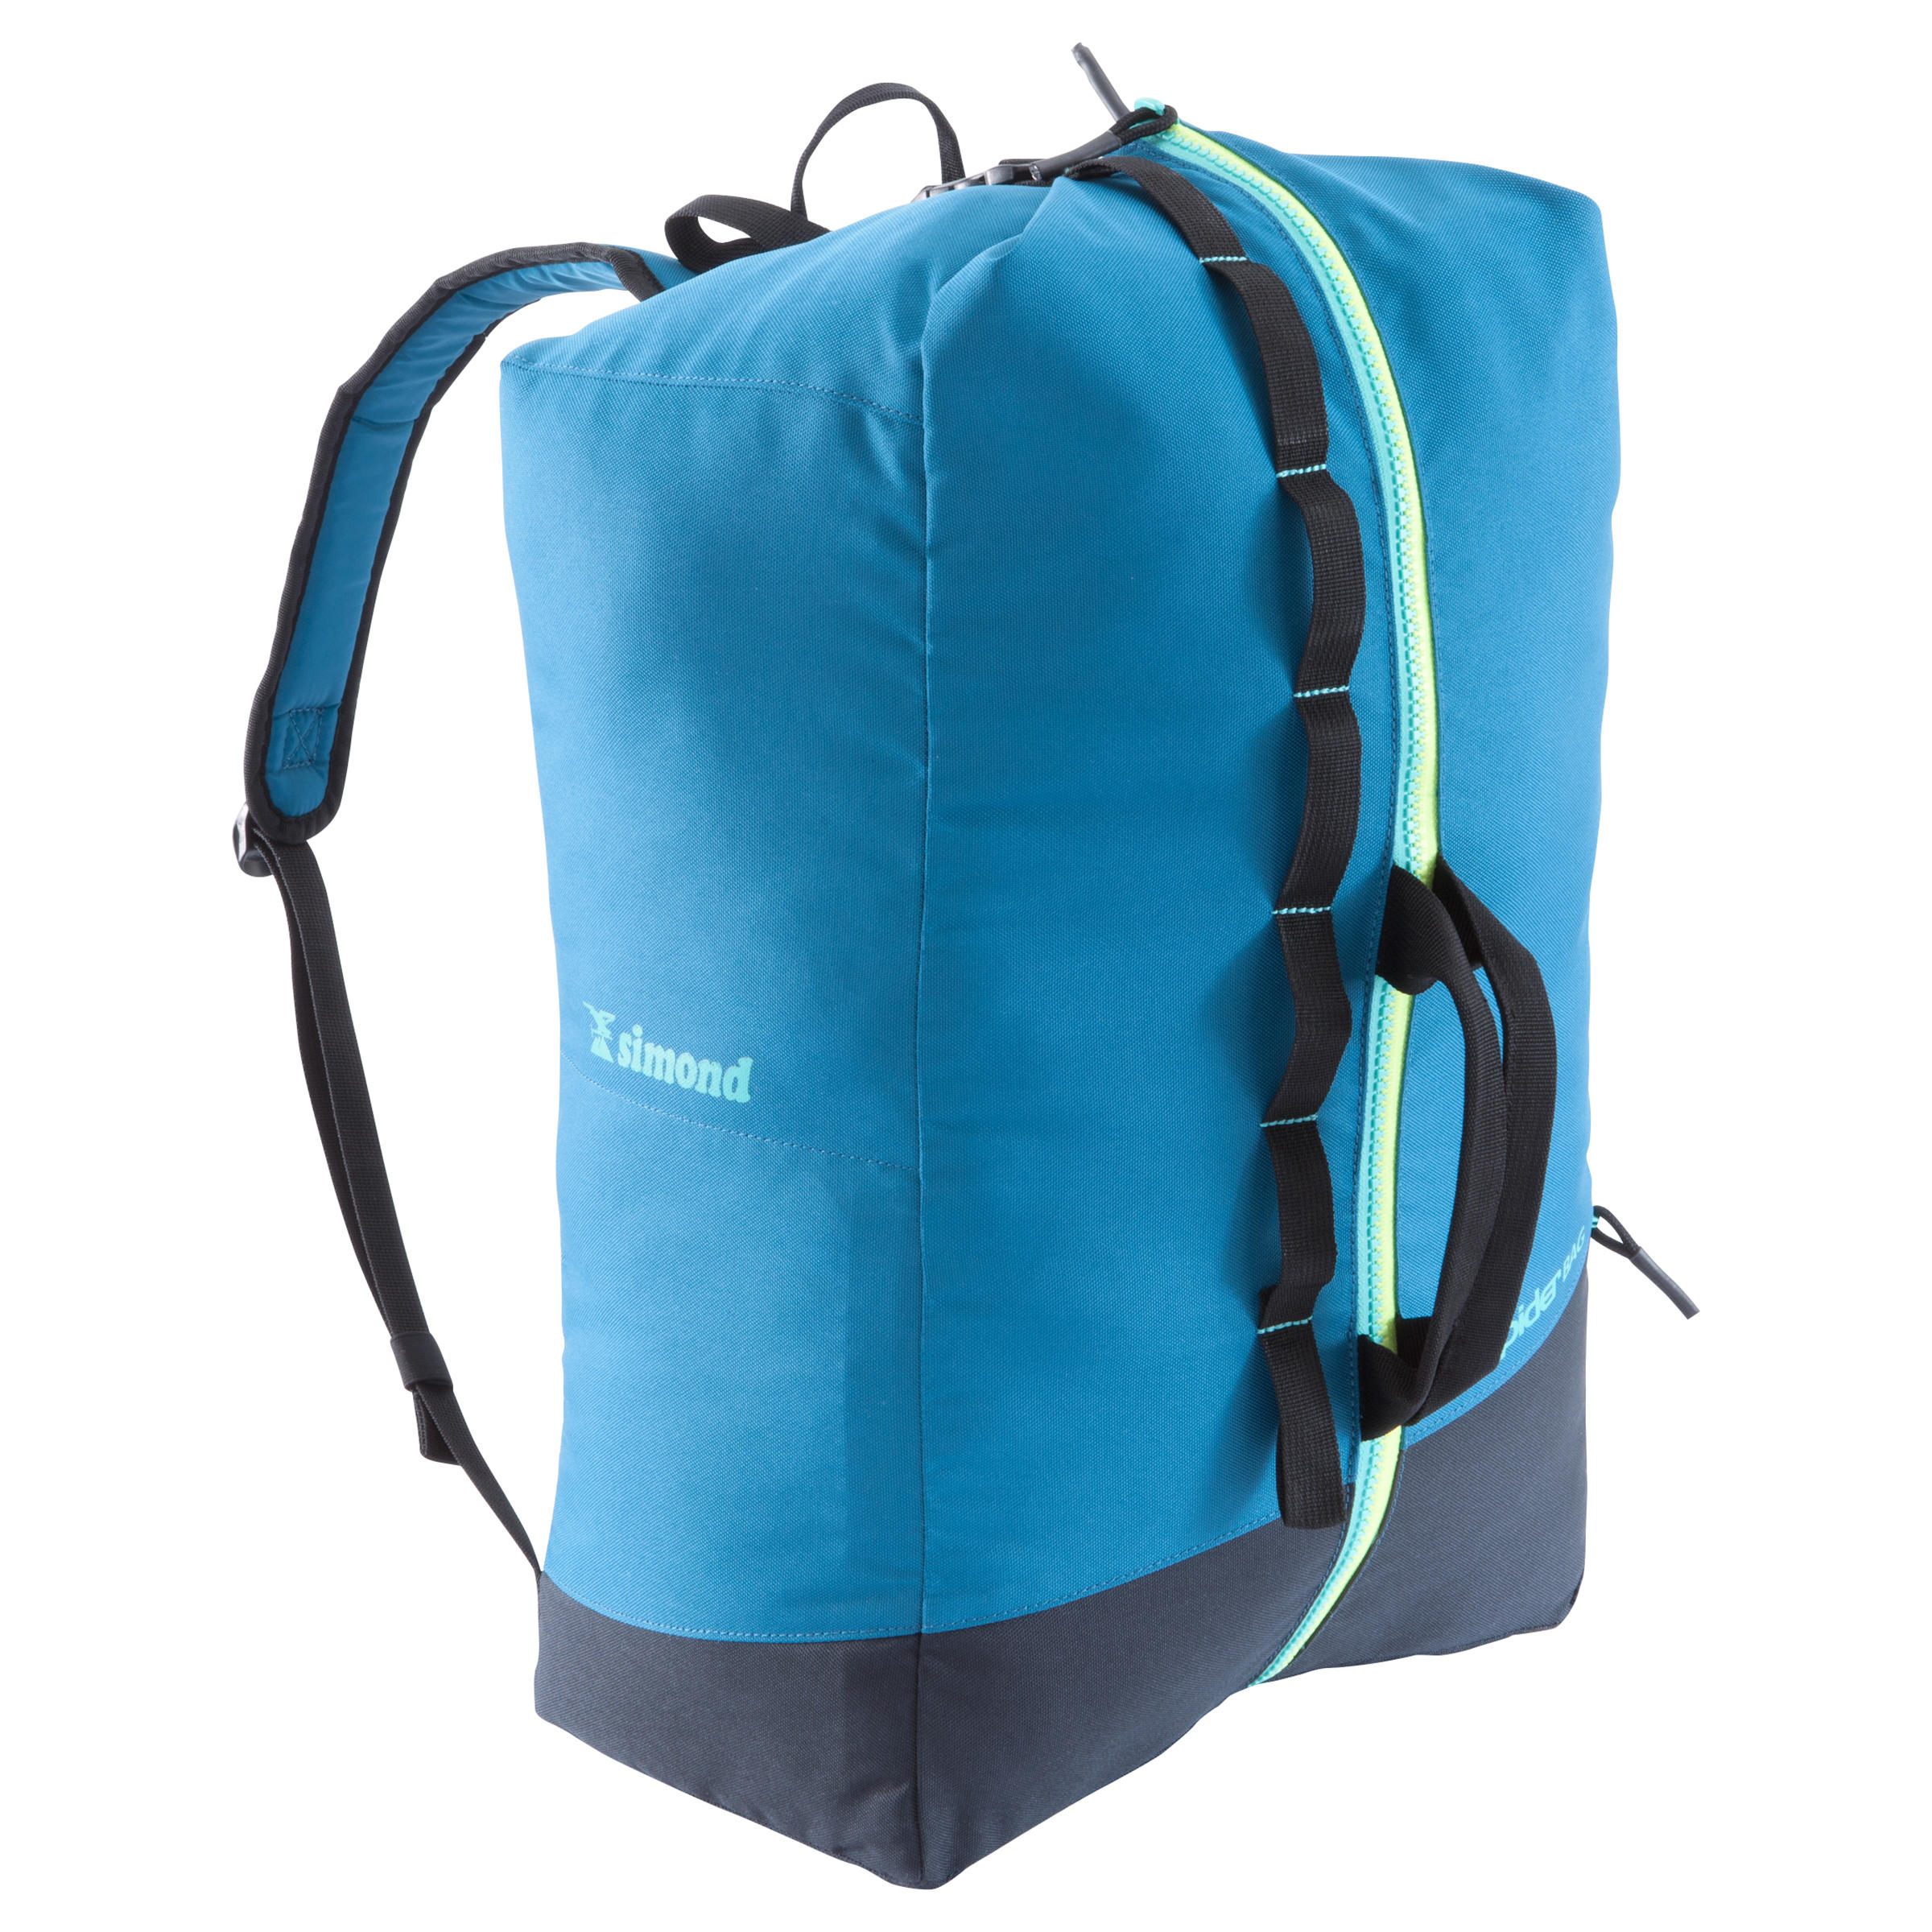 Spider Bag 30L - Blue